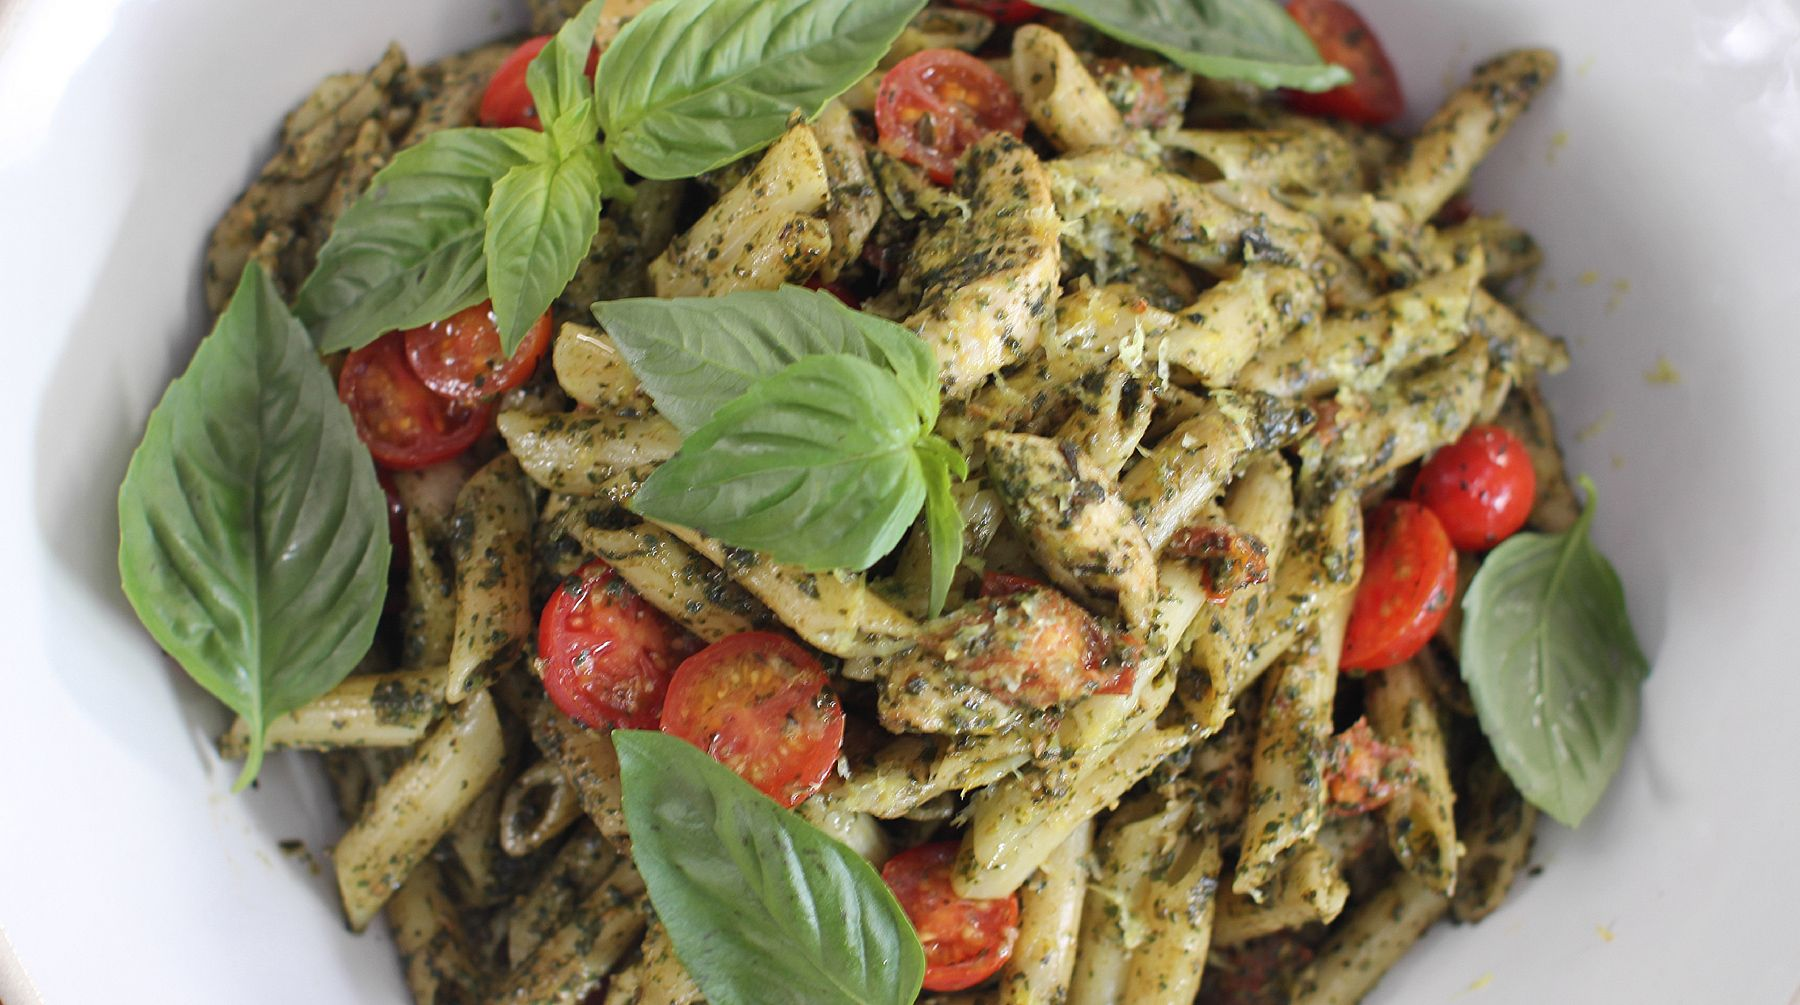 Try this quick and easy pasta recipe by siba mtongana from sibas food forumfinder Gallery